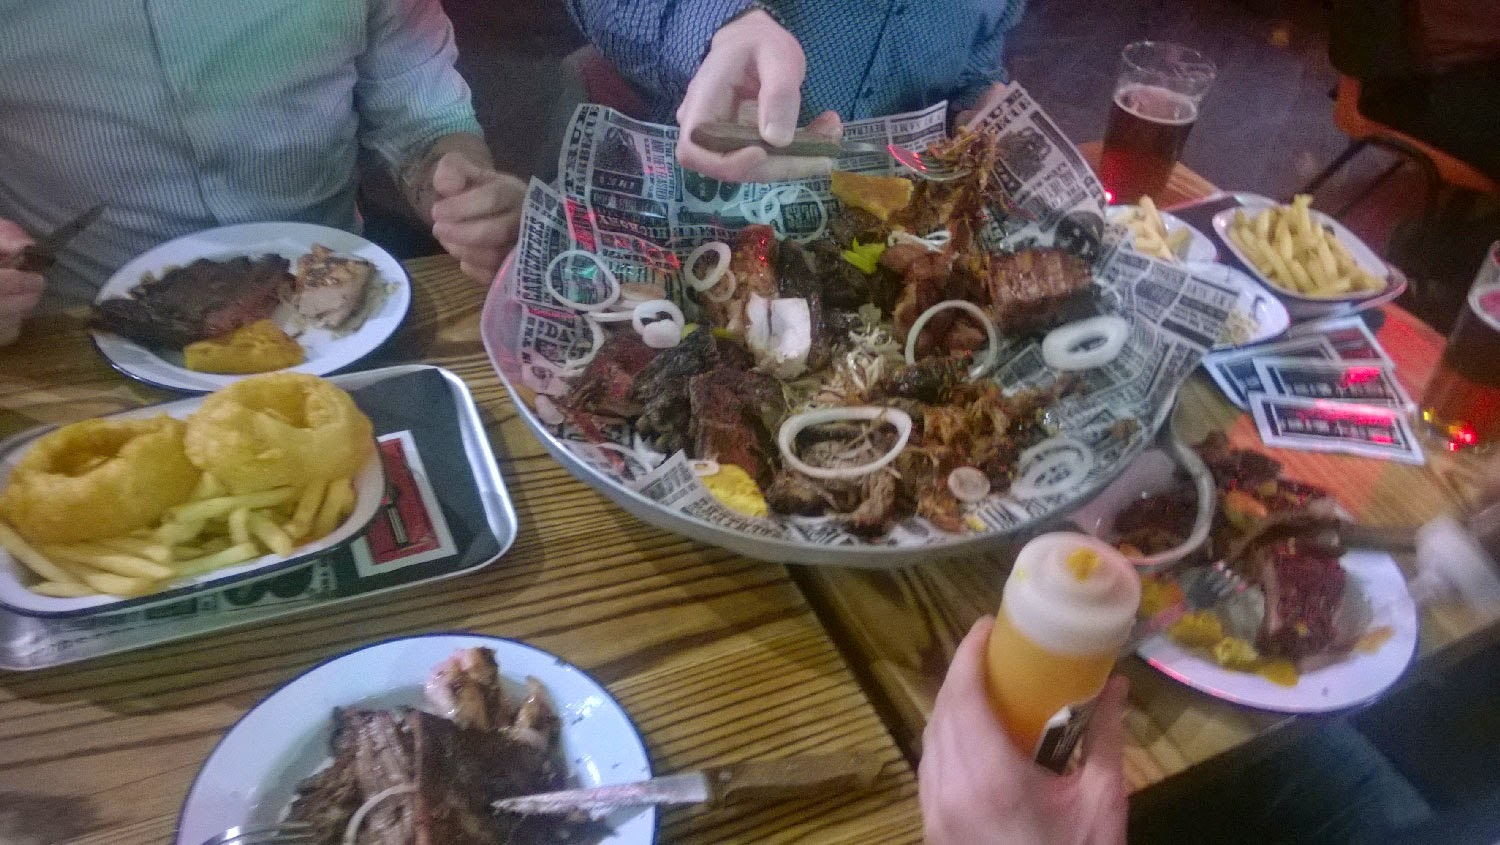 A dustbin lid full of meat, and beers